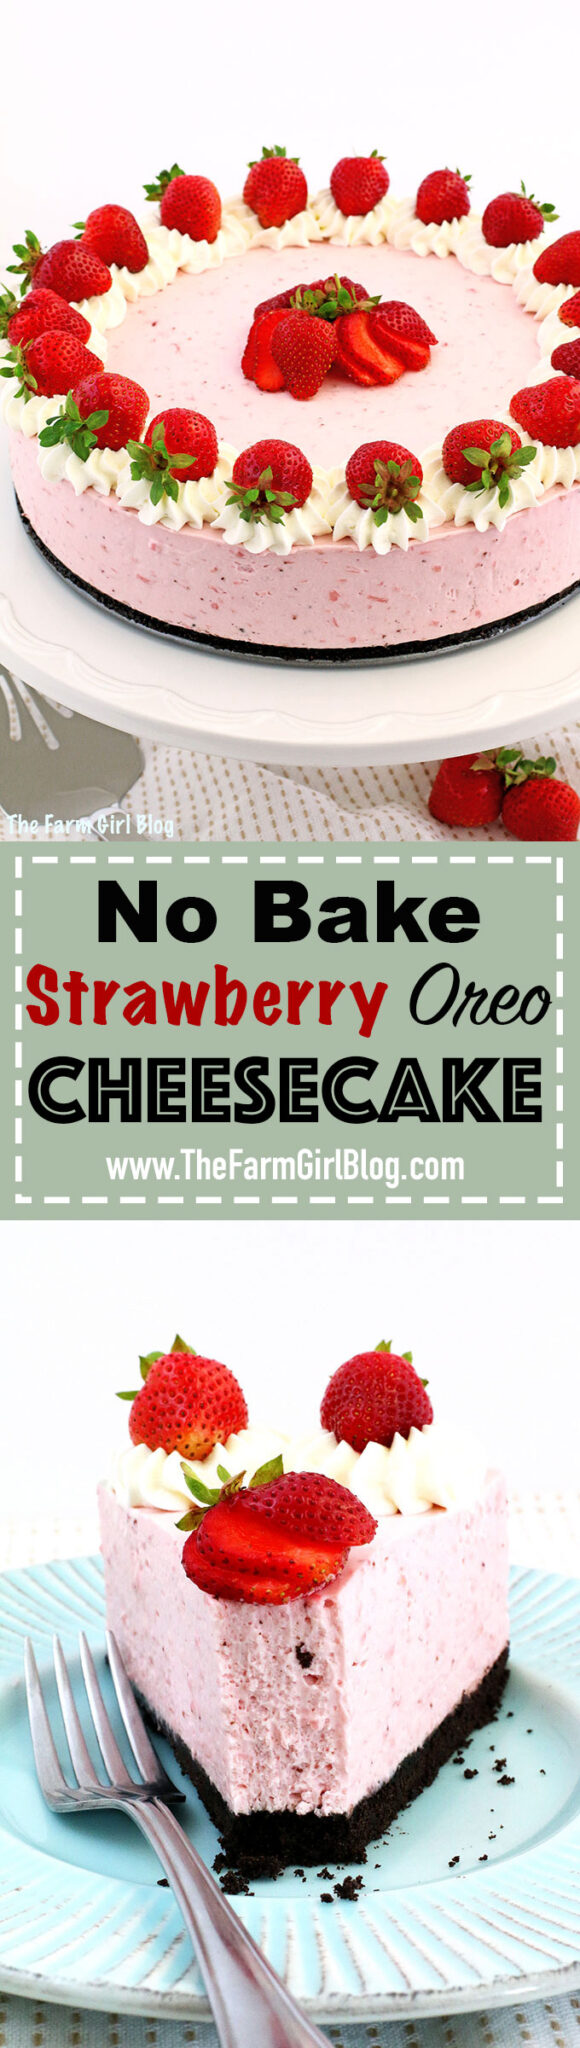 backyard gardening, cheesecake, delicious, easy recipe, gardening blogger, homegrown strawberries, No Bake Strawberry Oreo Cheesecake Recipe, no-bake cheesecake, oreo cookie crust, oreo strawberry cheesecake, organically grown strawberries, strawberries